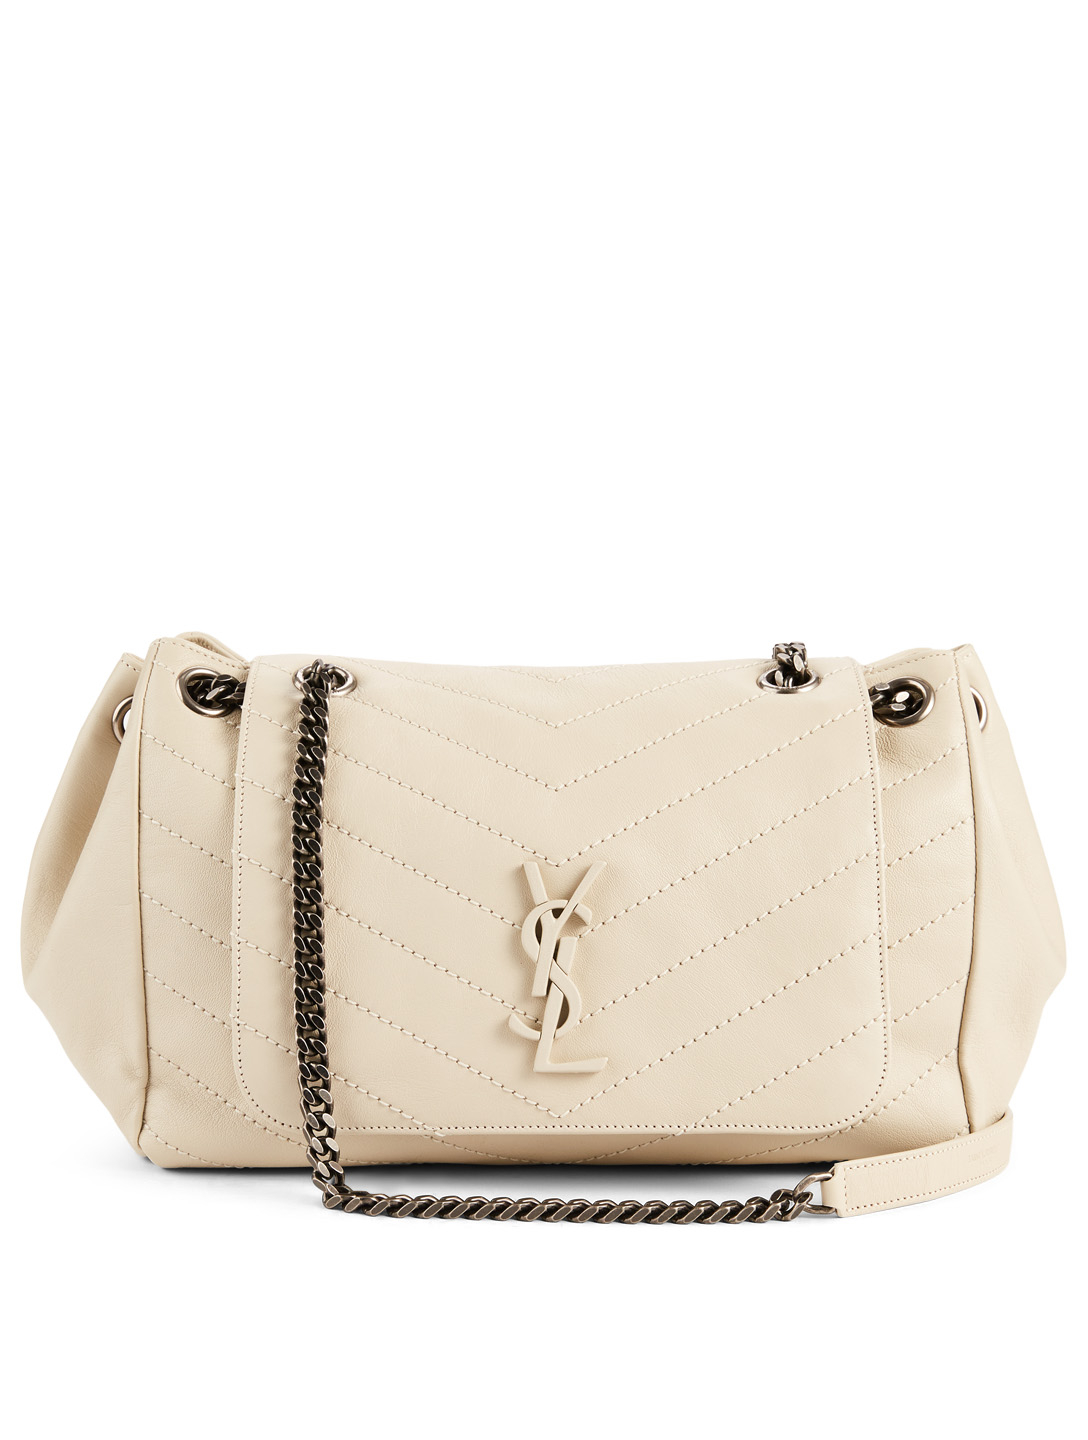 91a1adf4585c68 SAINT LAURENT Medium Nolita Monogram Leather Chain Bag | Holt Renfrew